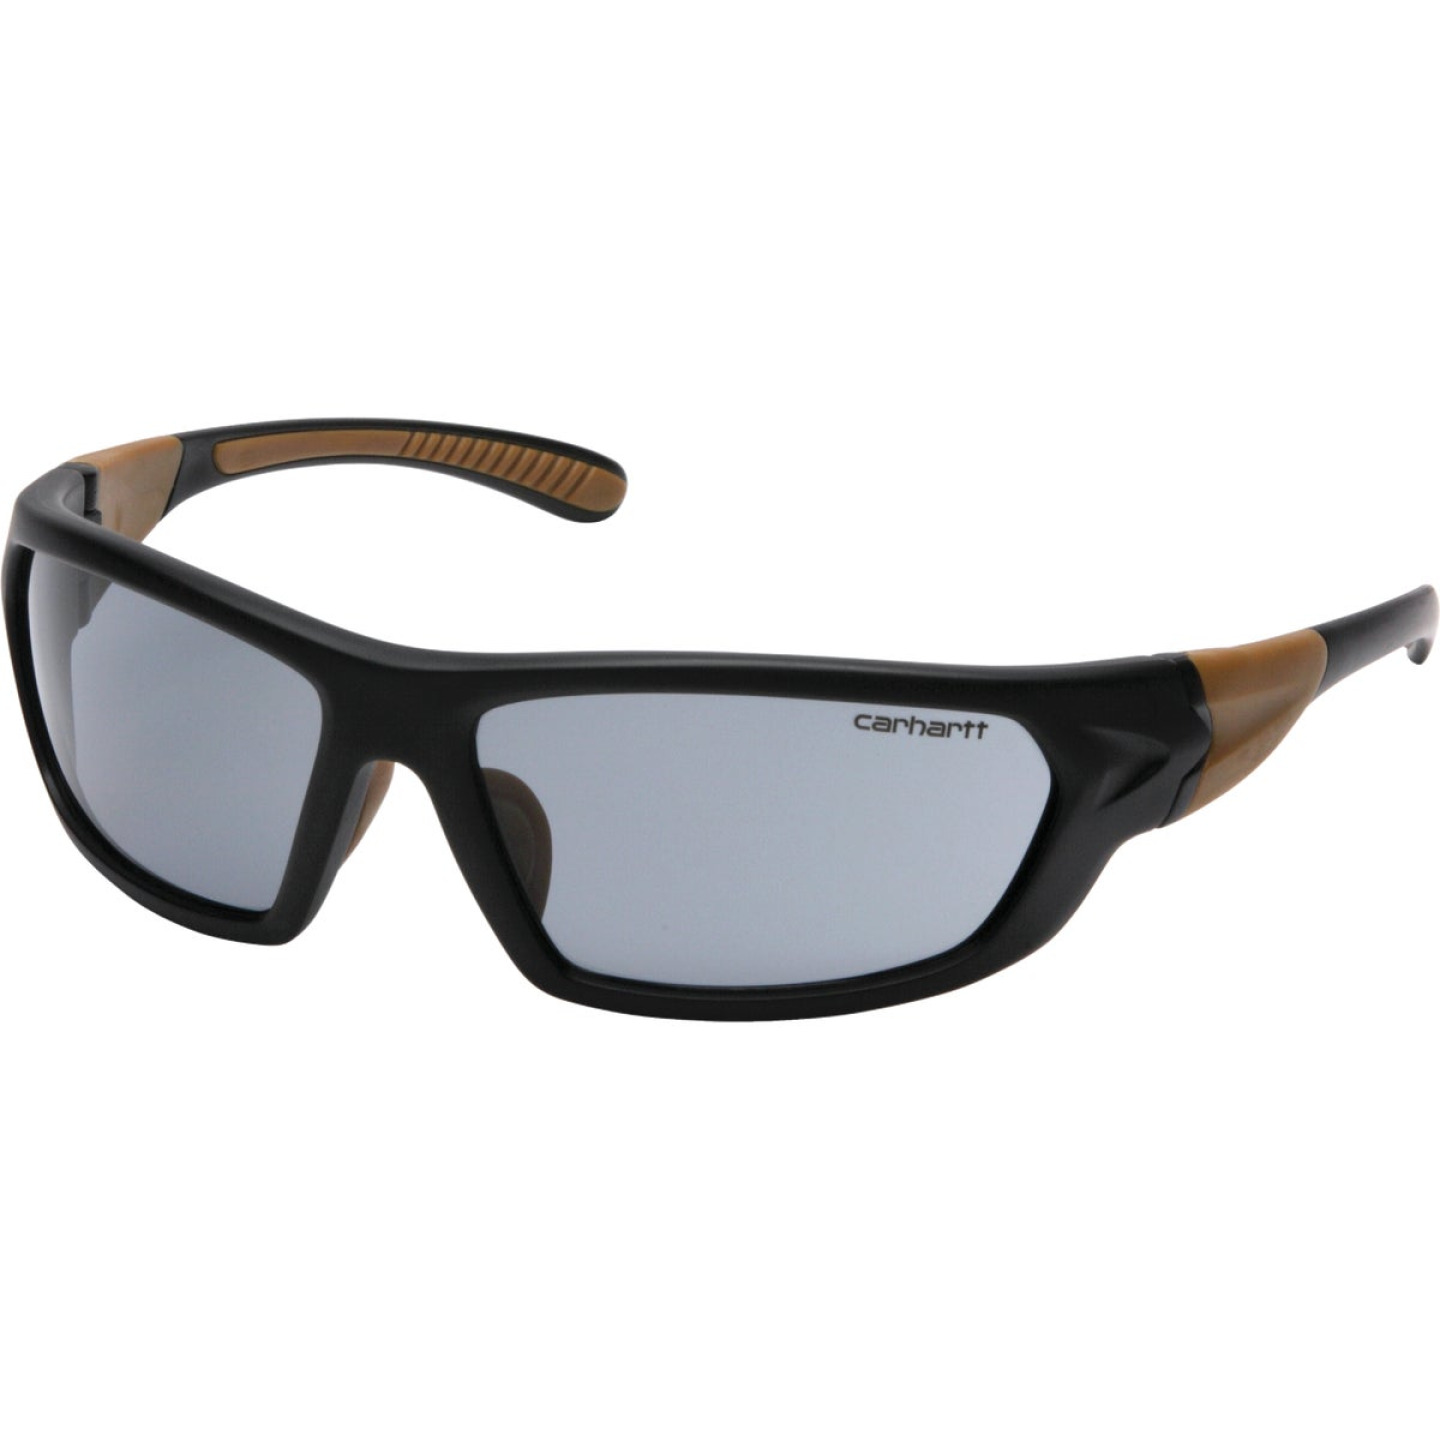 Carhartt Carbondale Black & Tan Frame Safety Glasses with Gray Lenses Image 1